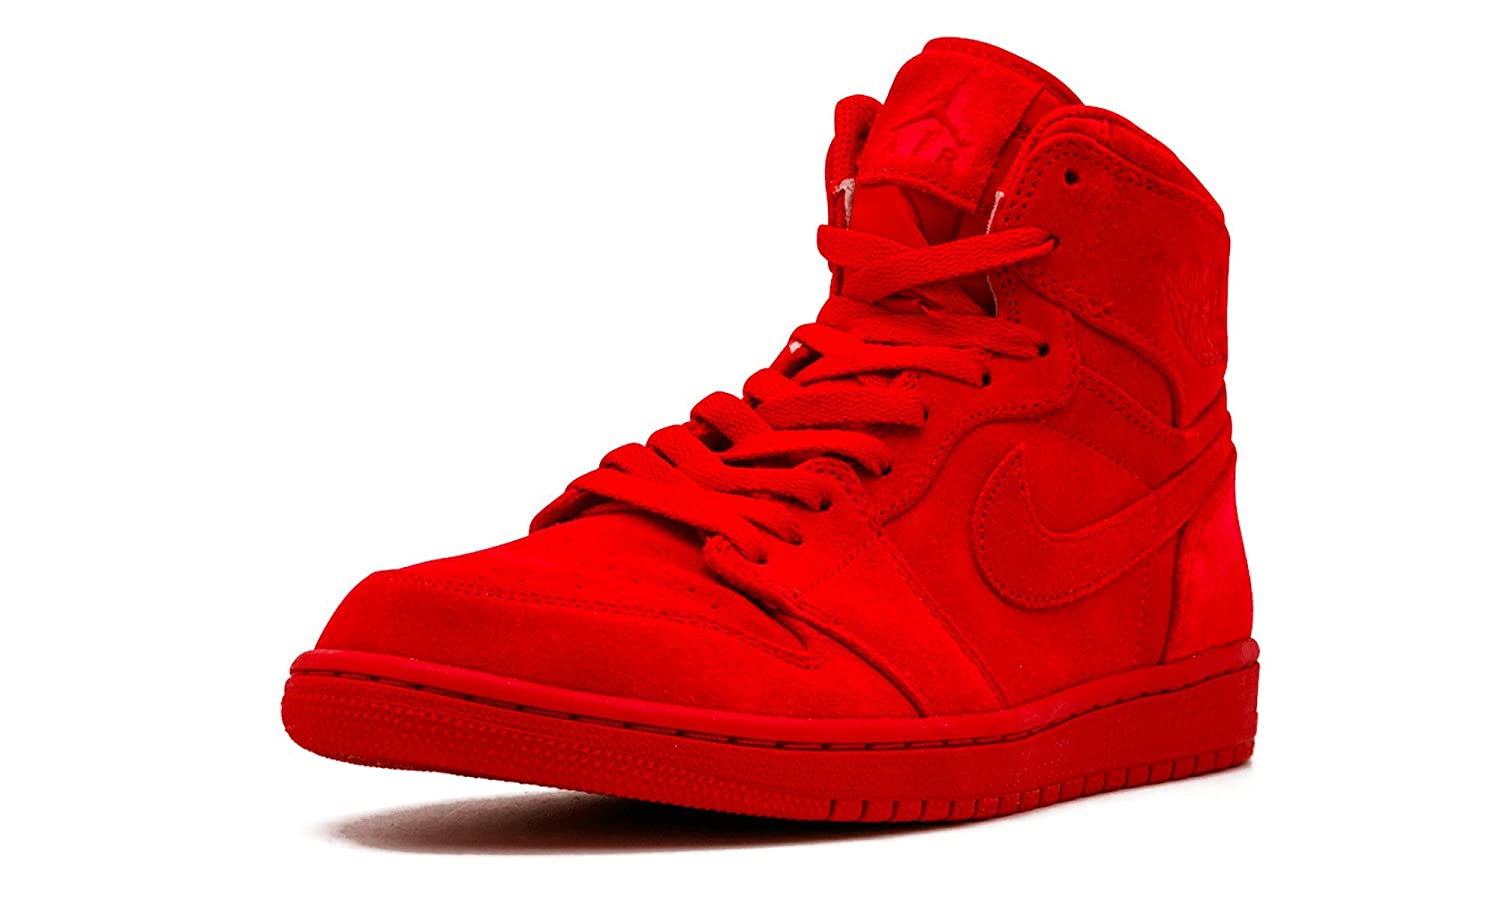 GYM RED GYM RED Nike - AIR JORDAN 1 MID